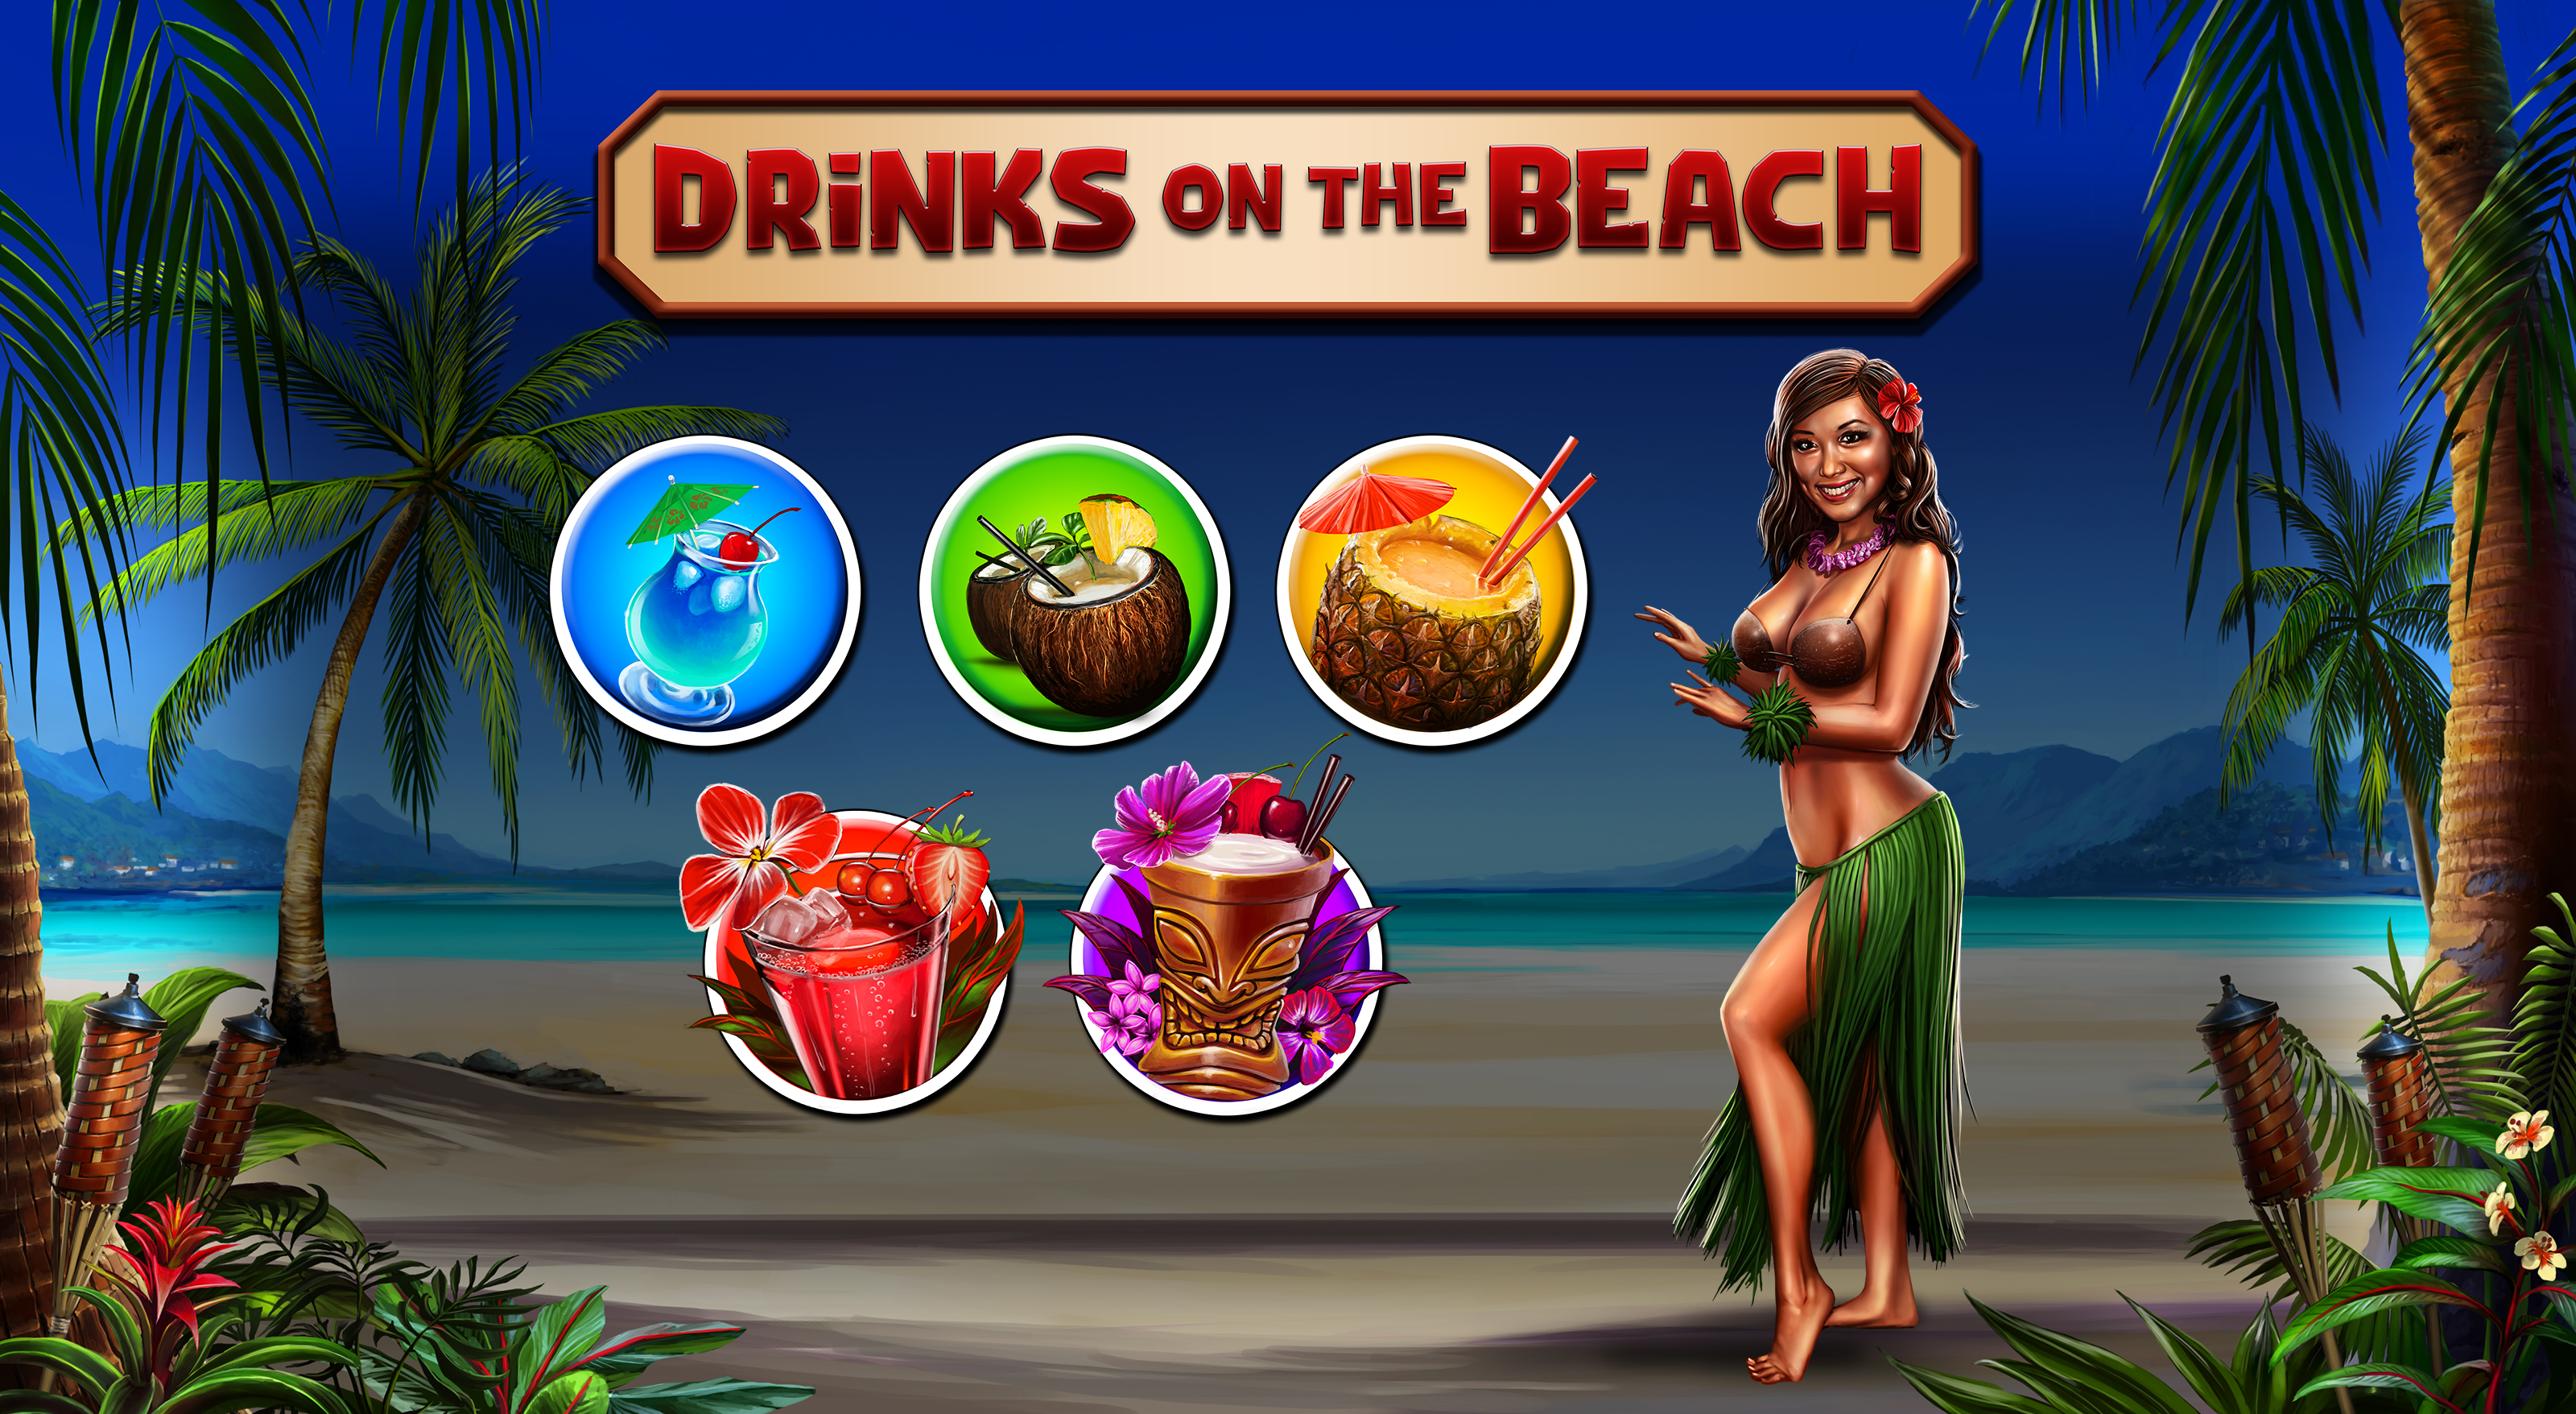 Drinks on the Beach symbols